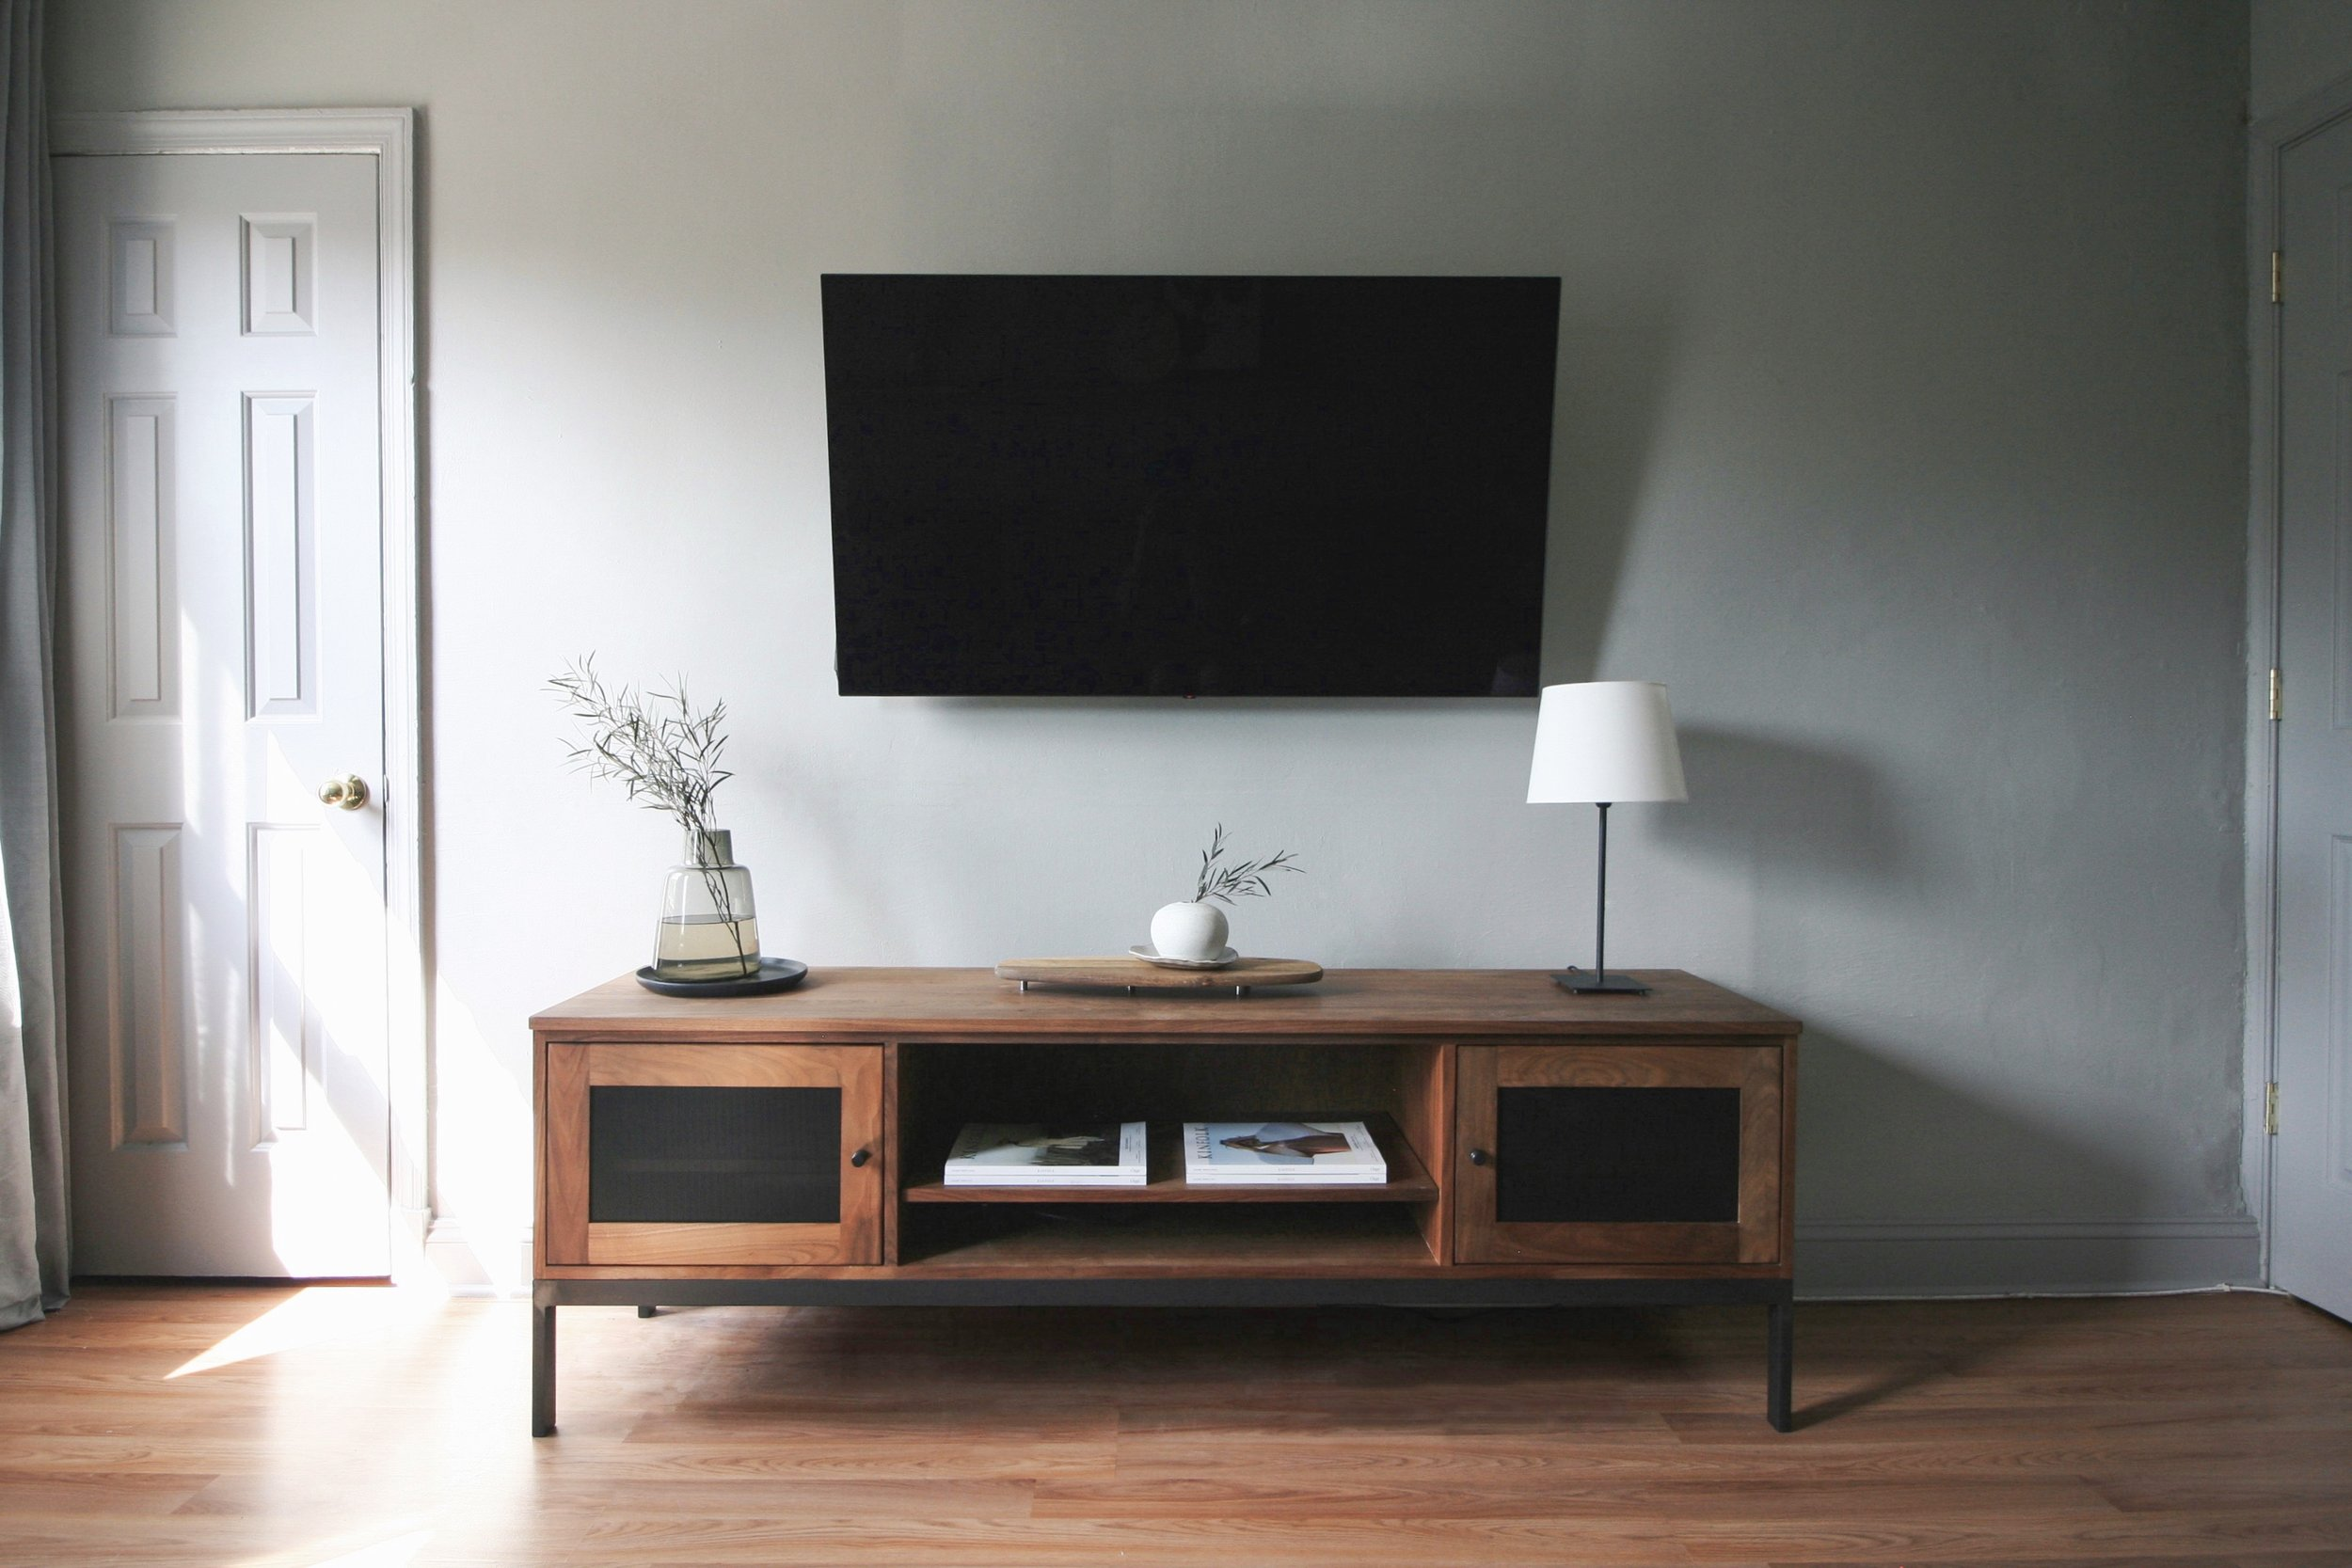 In love with this media table from Room and Board